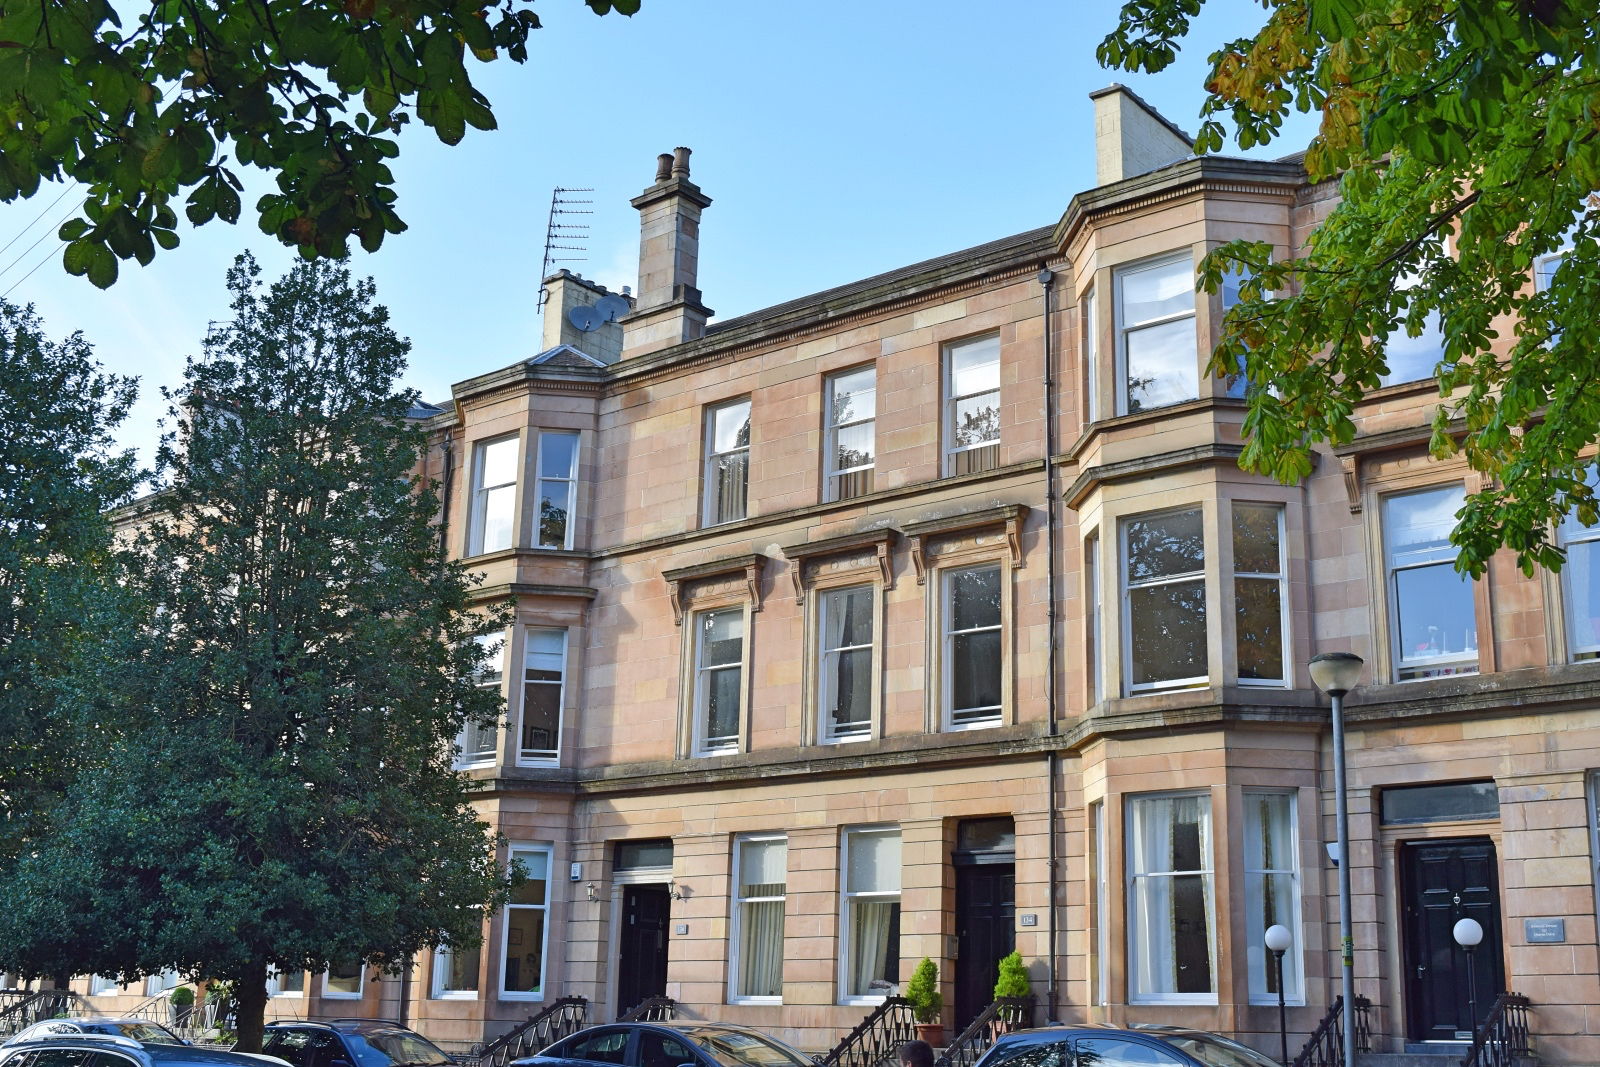 1 Bed Flat Glasgow 4 Bed Flats Apartments Queens Drive Glasgow G42 8qn Walker